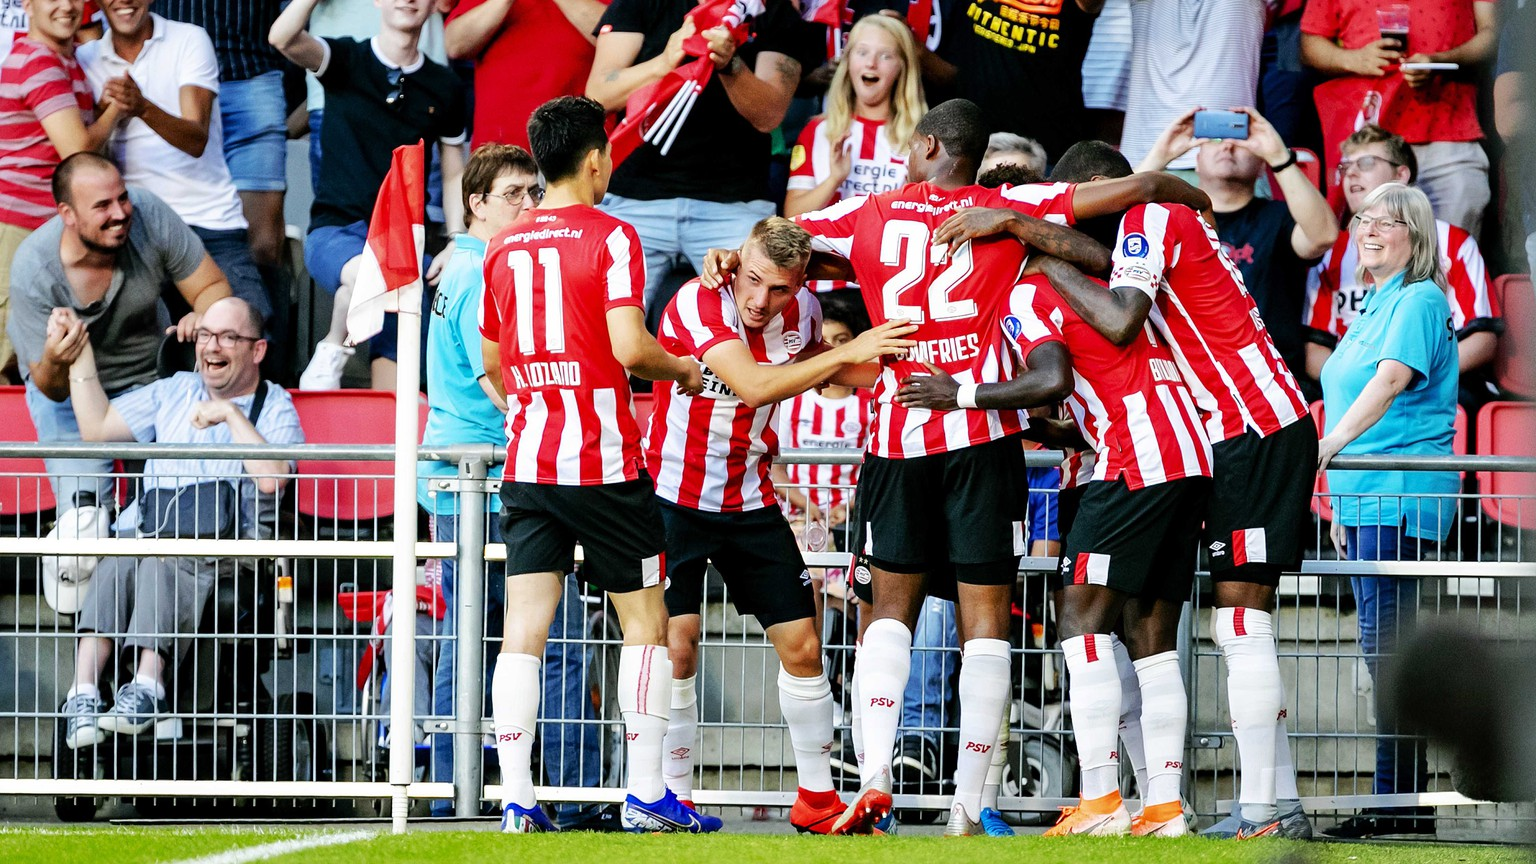 epa07735923 PSV Eindhoven player Steven Bergwijn reacts after scoring the 1-0 against FC Basel during the second qualifying round for the Champions League match in Eindhoven, the Netherlands, 23 July 2019.  EPA/ROBIN VAN LONKHUIJSEN